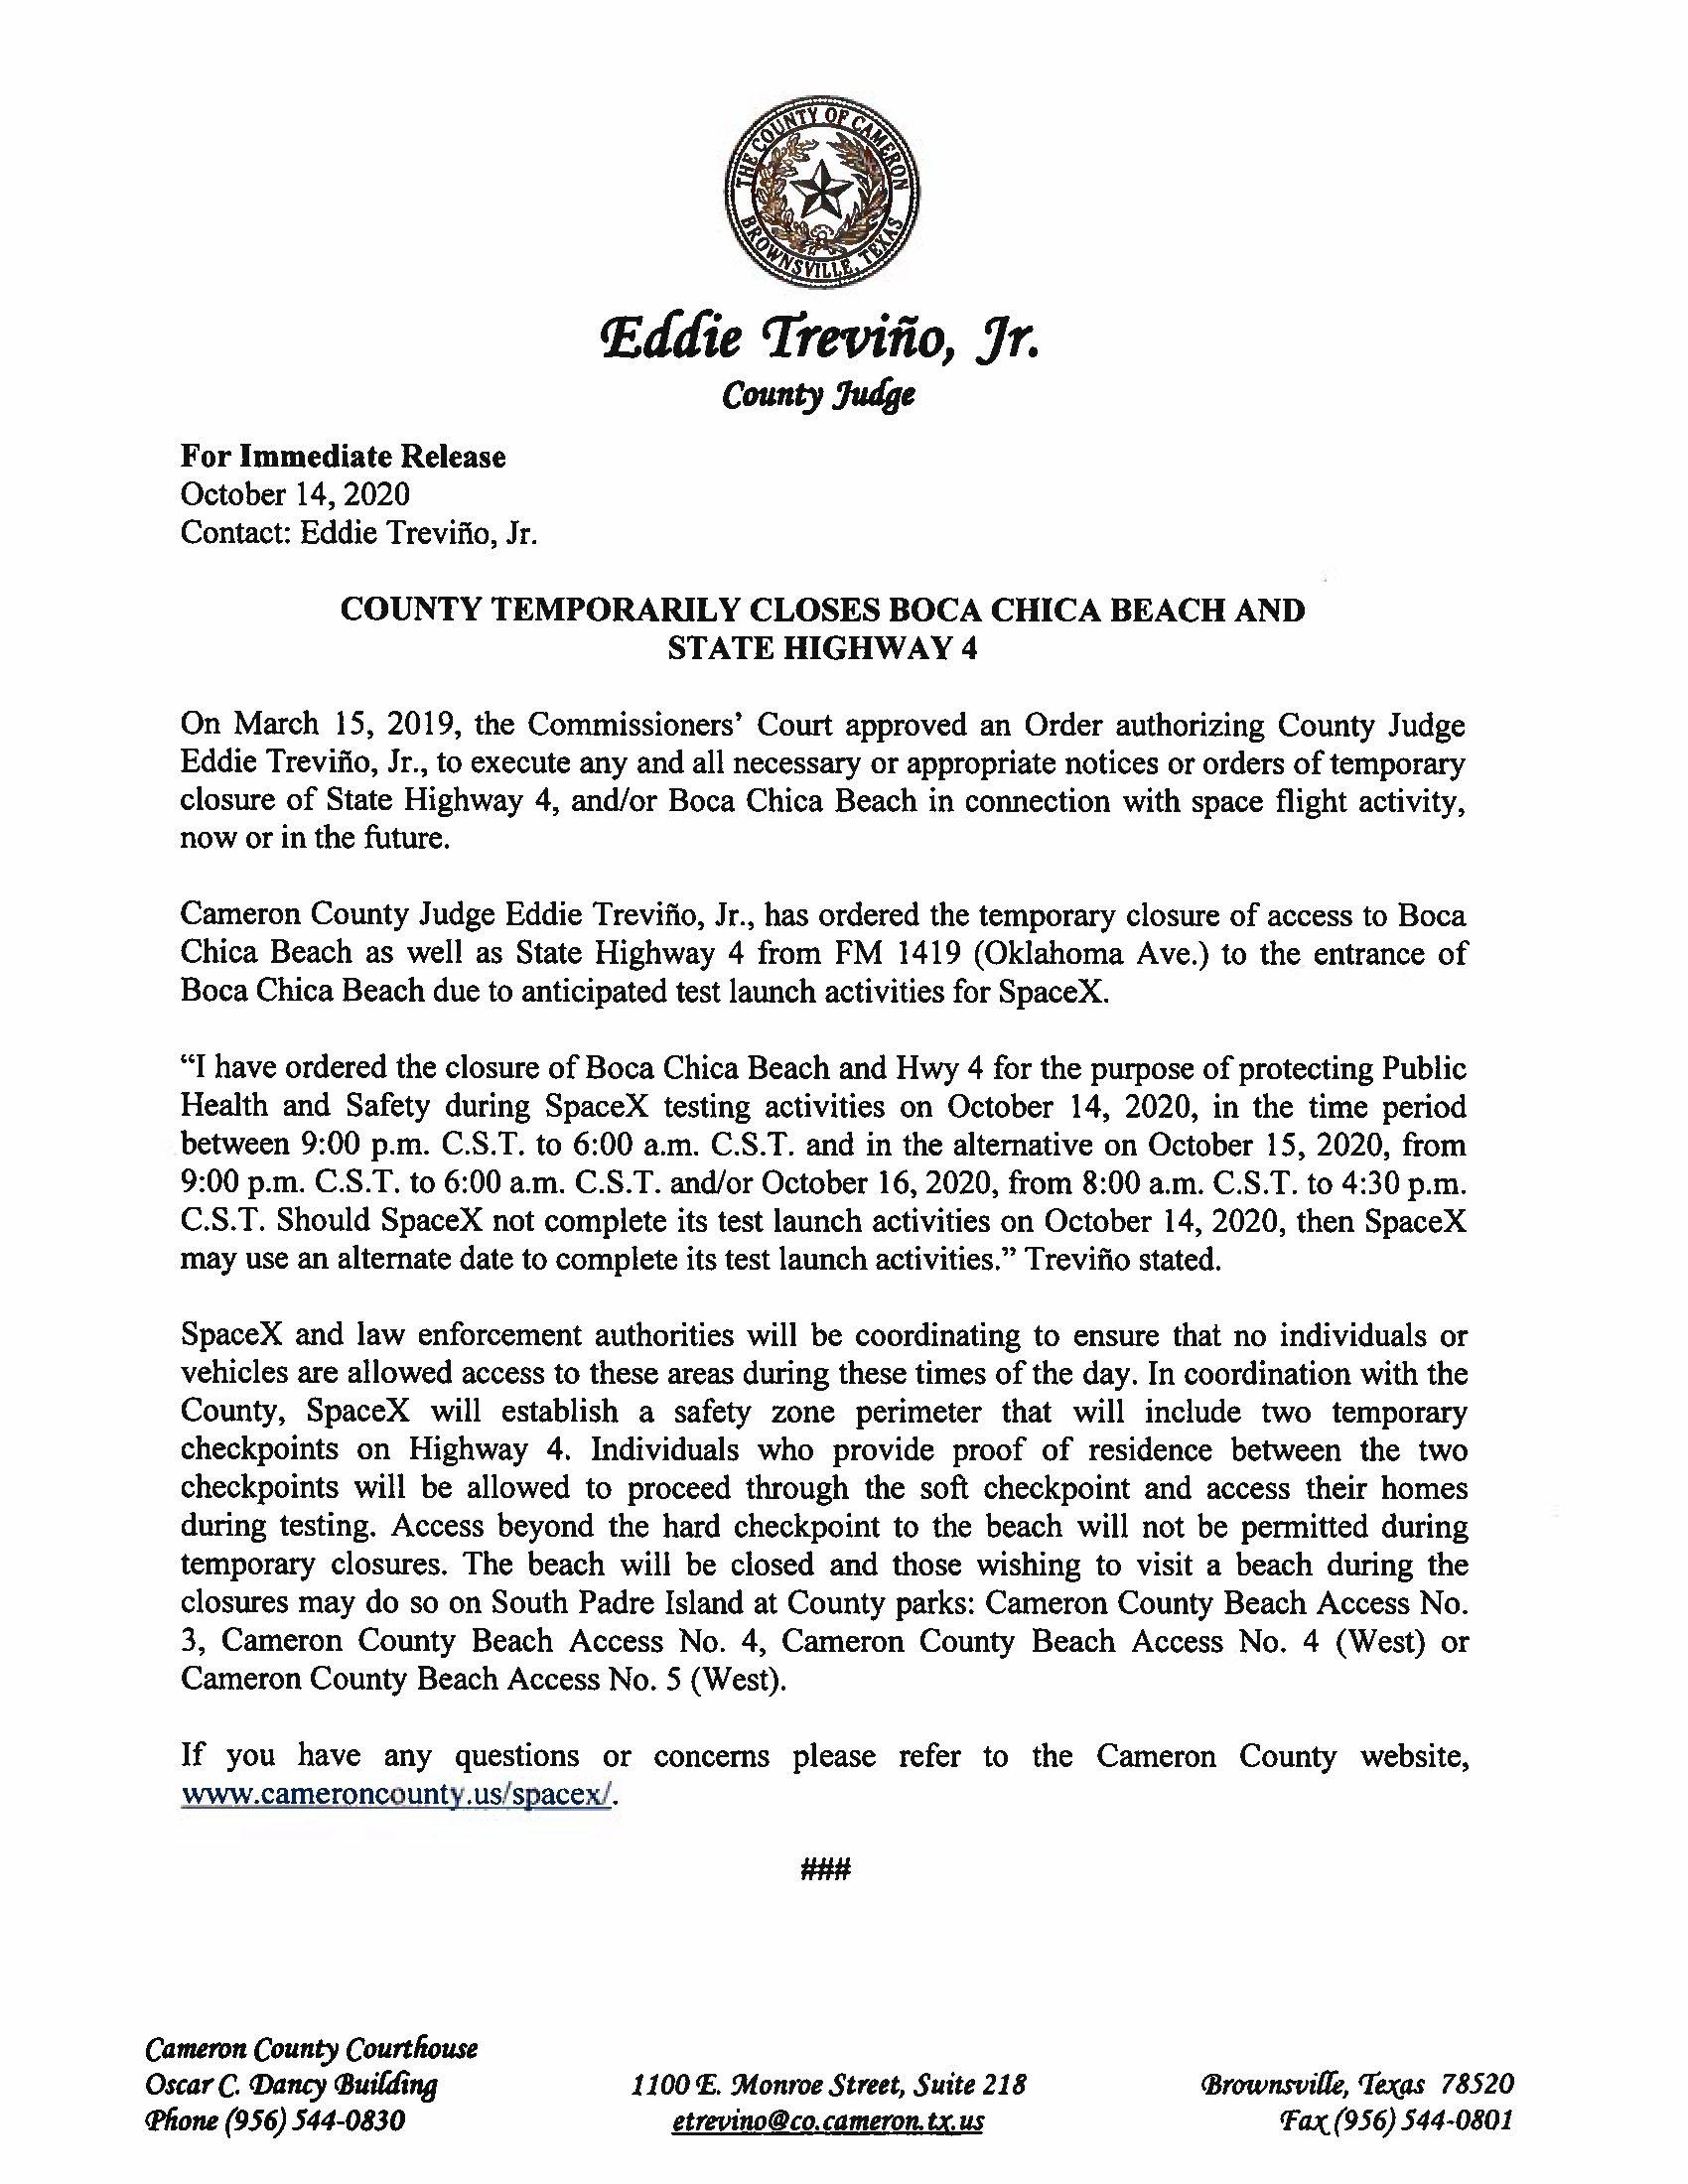 Press Release In English And Spanish.10.14.20 Page 1